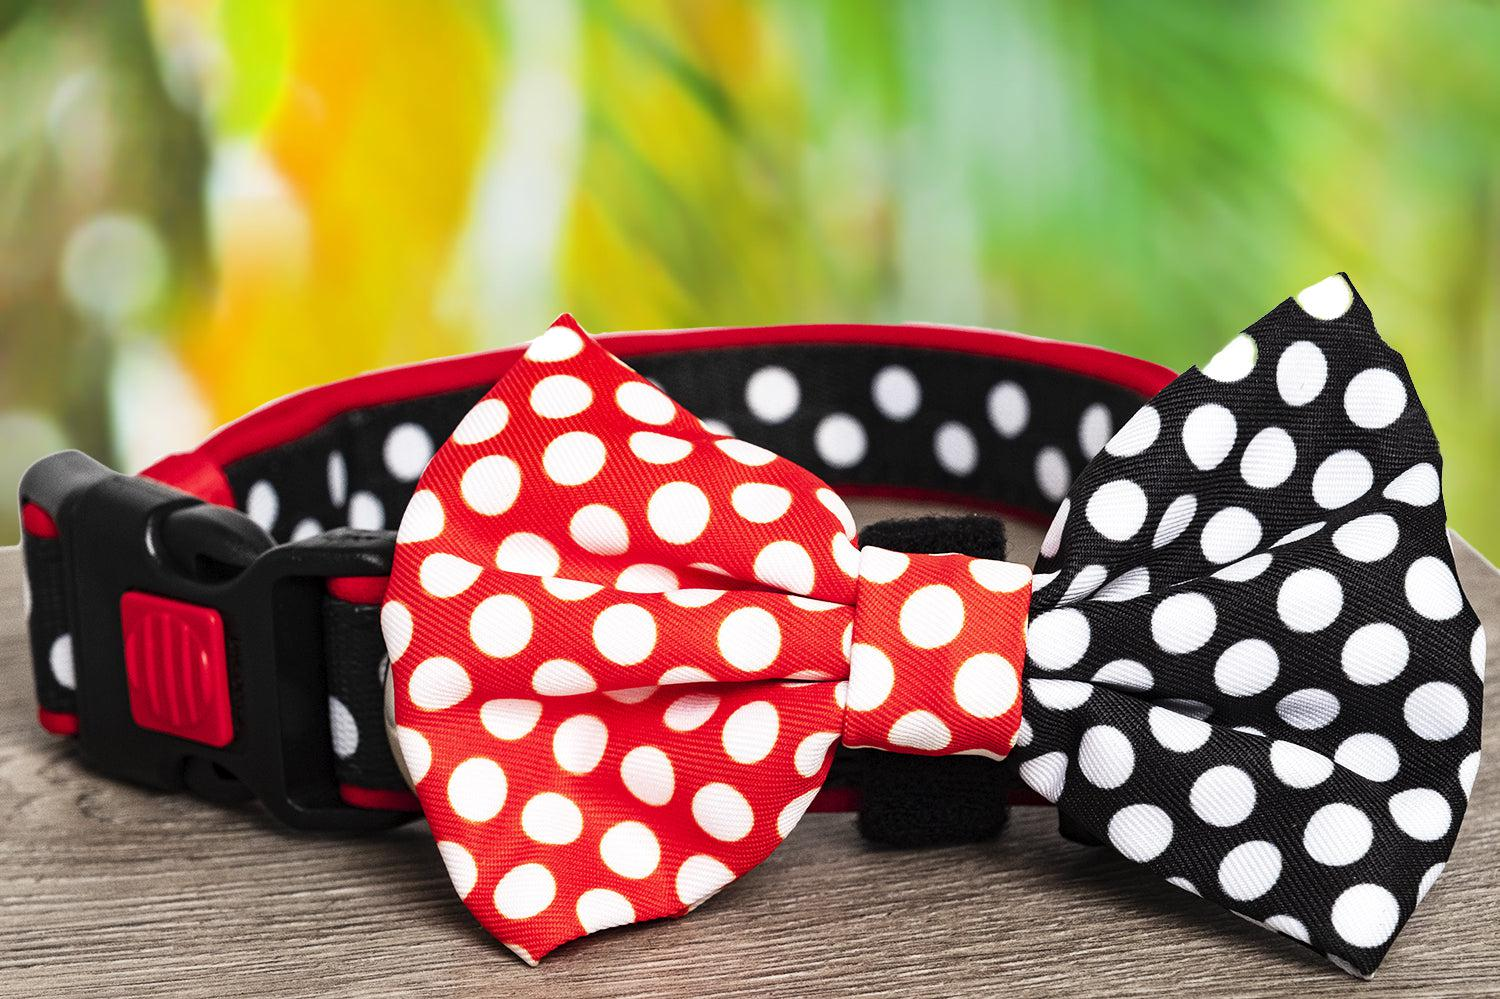 Mr Spotty Dox Dog Collar & Bow Tie (Neoprene)-Dizzy Dog Collars-Dizzy Dog Collars